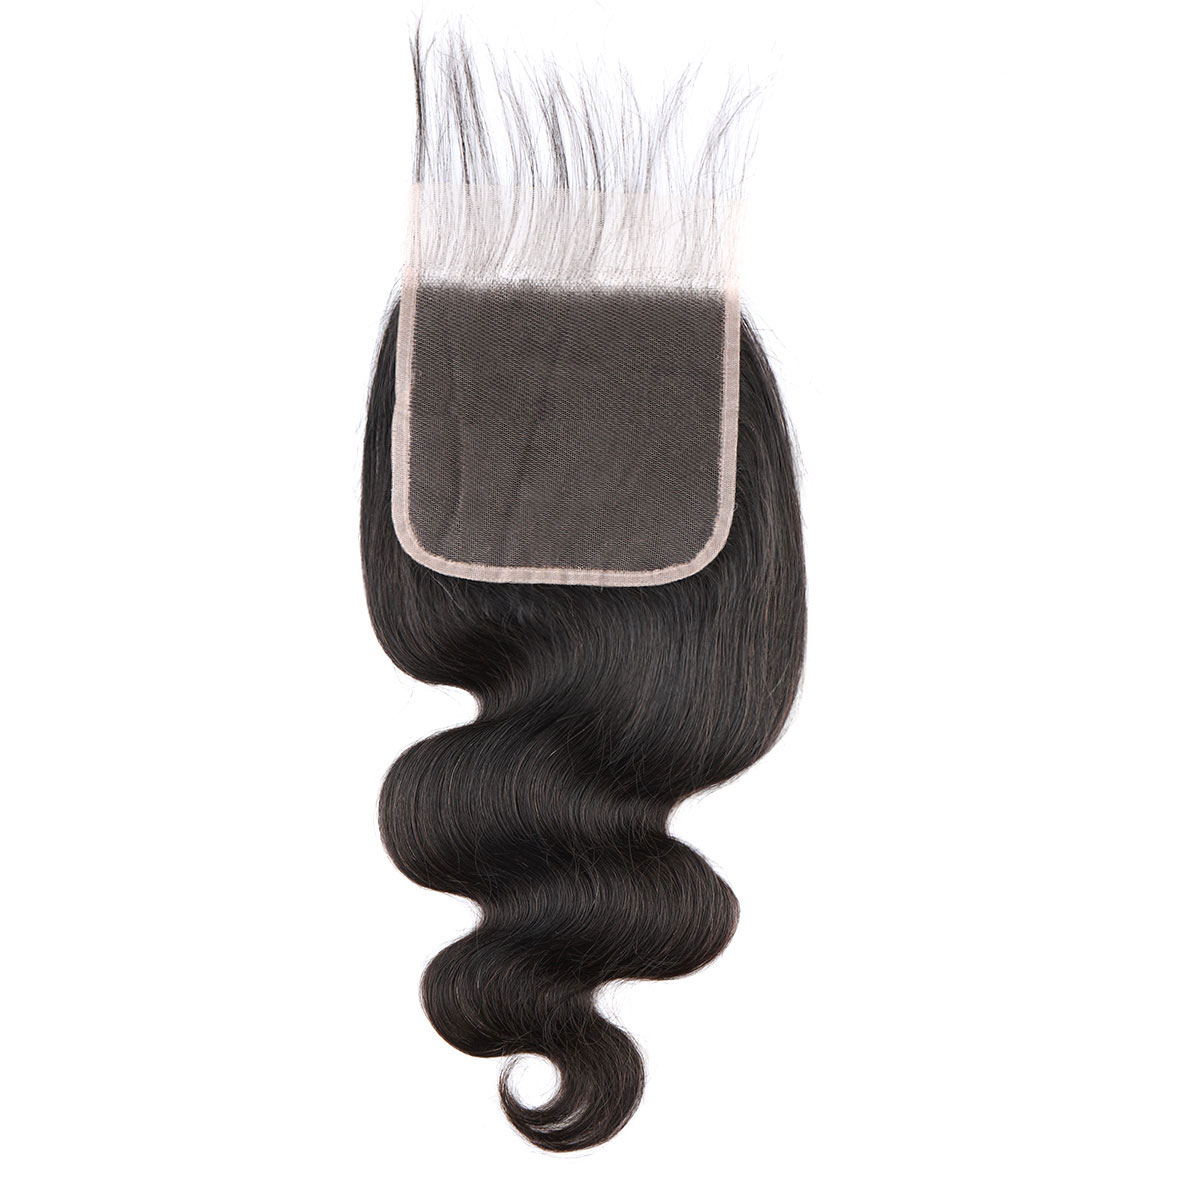 Wholesale virgin hair vendors vietnam hair silk base closure 5x5 lace closure